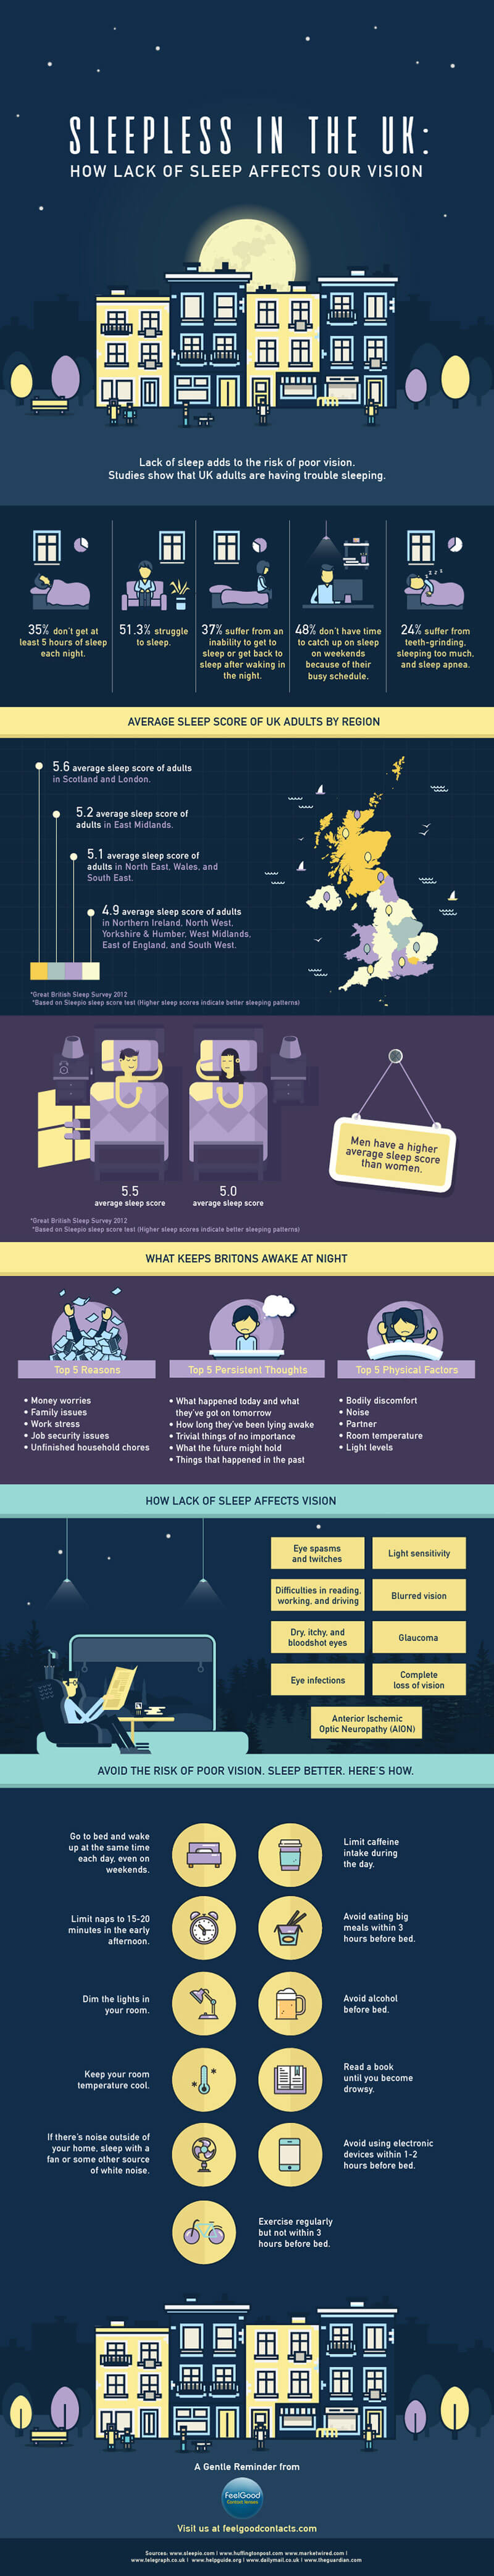 lack of sleep infographic